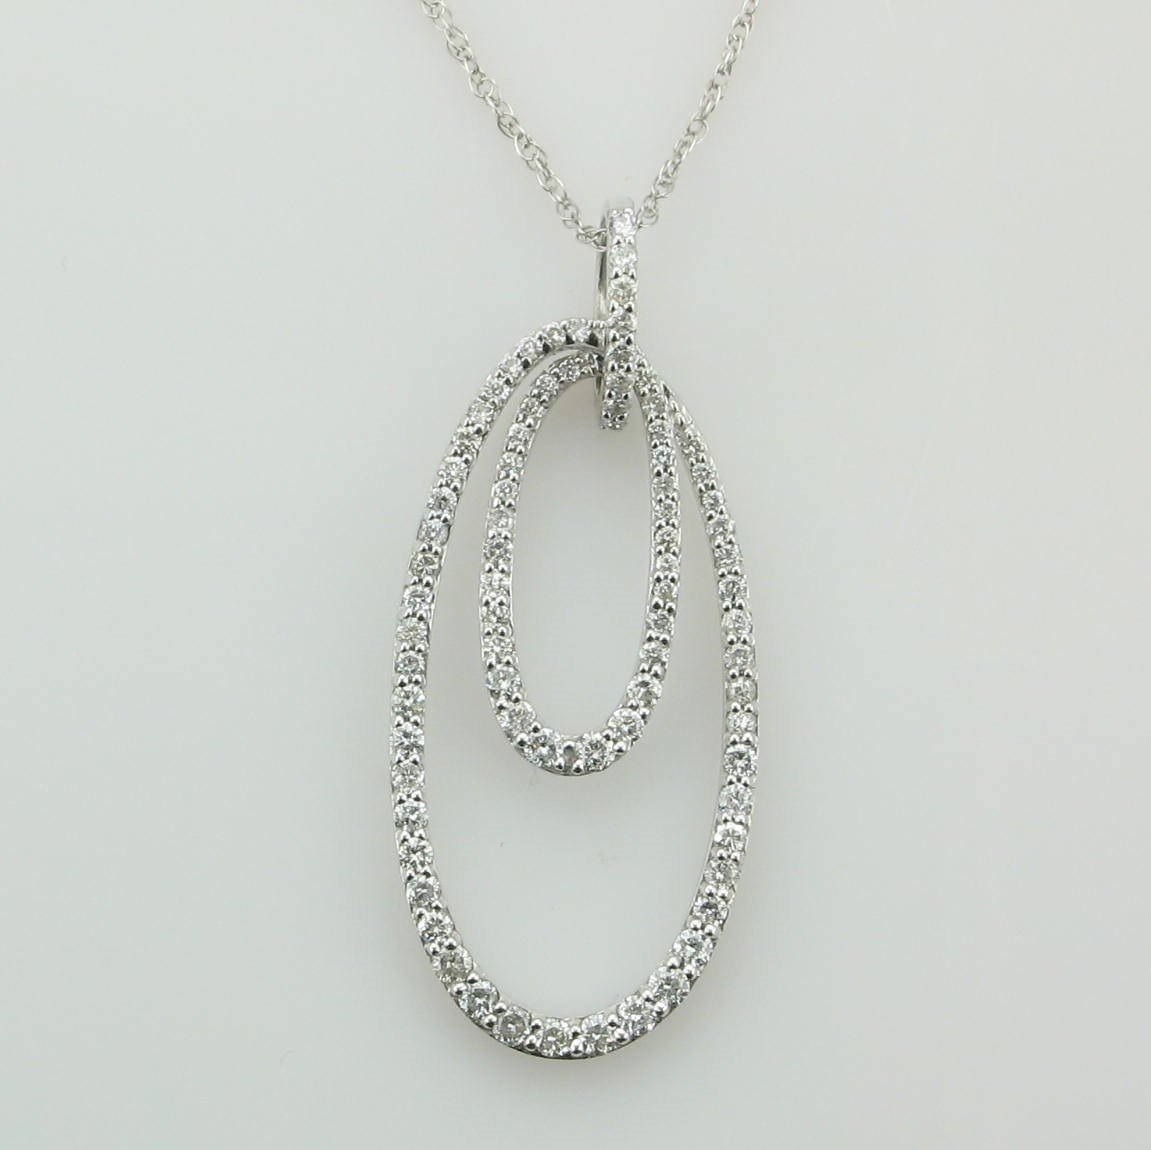 14K White Gold Double Oval Diamond Encrusted Necklace